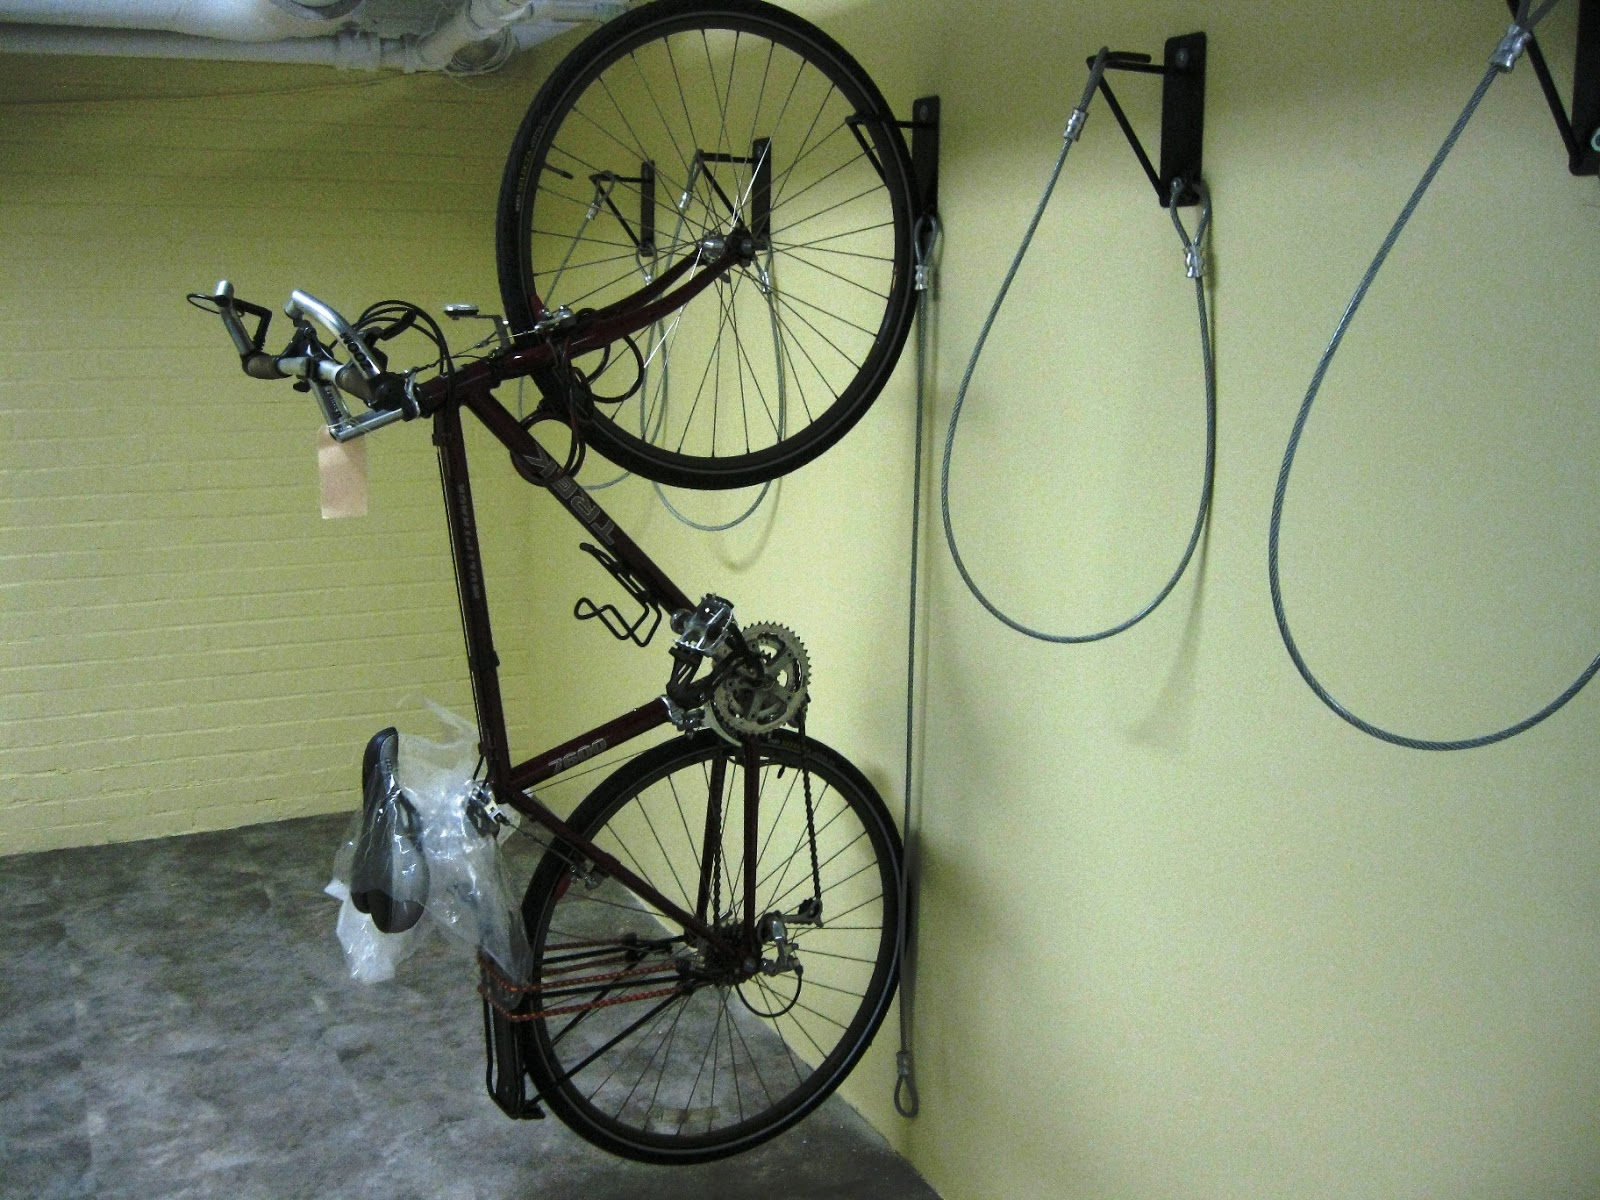 Bike Racks Pensacola Fl Wall Mount Bike Racks Double Bike Room